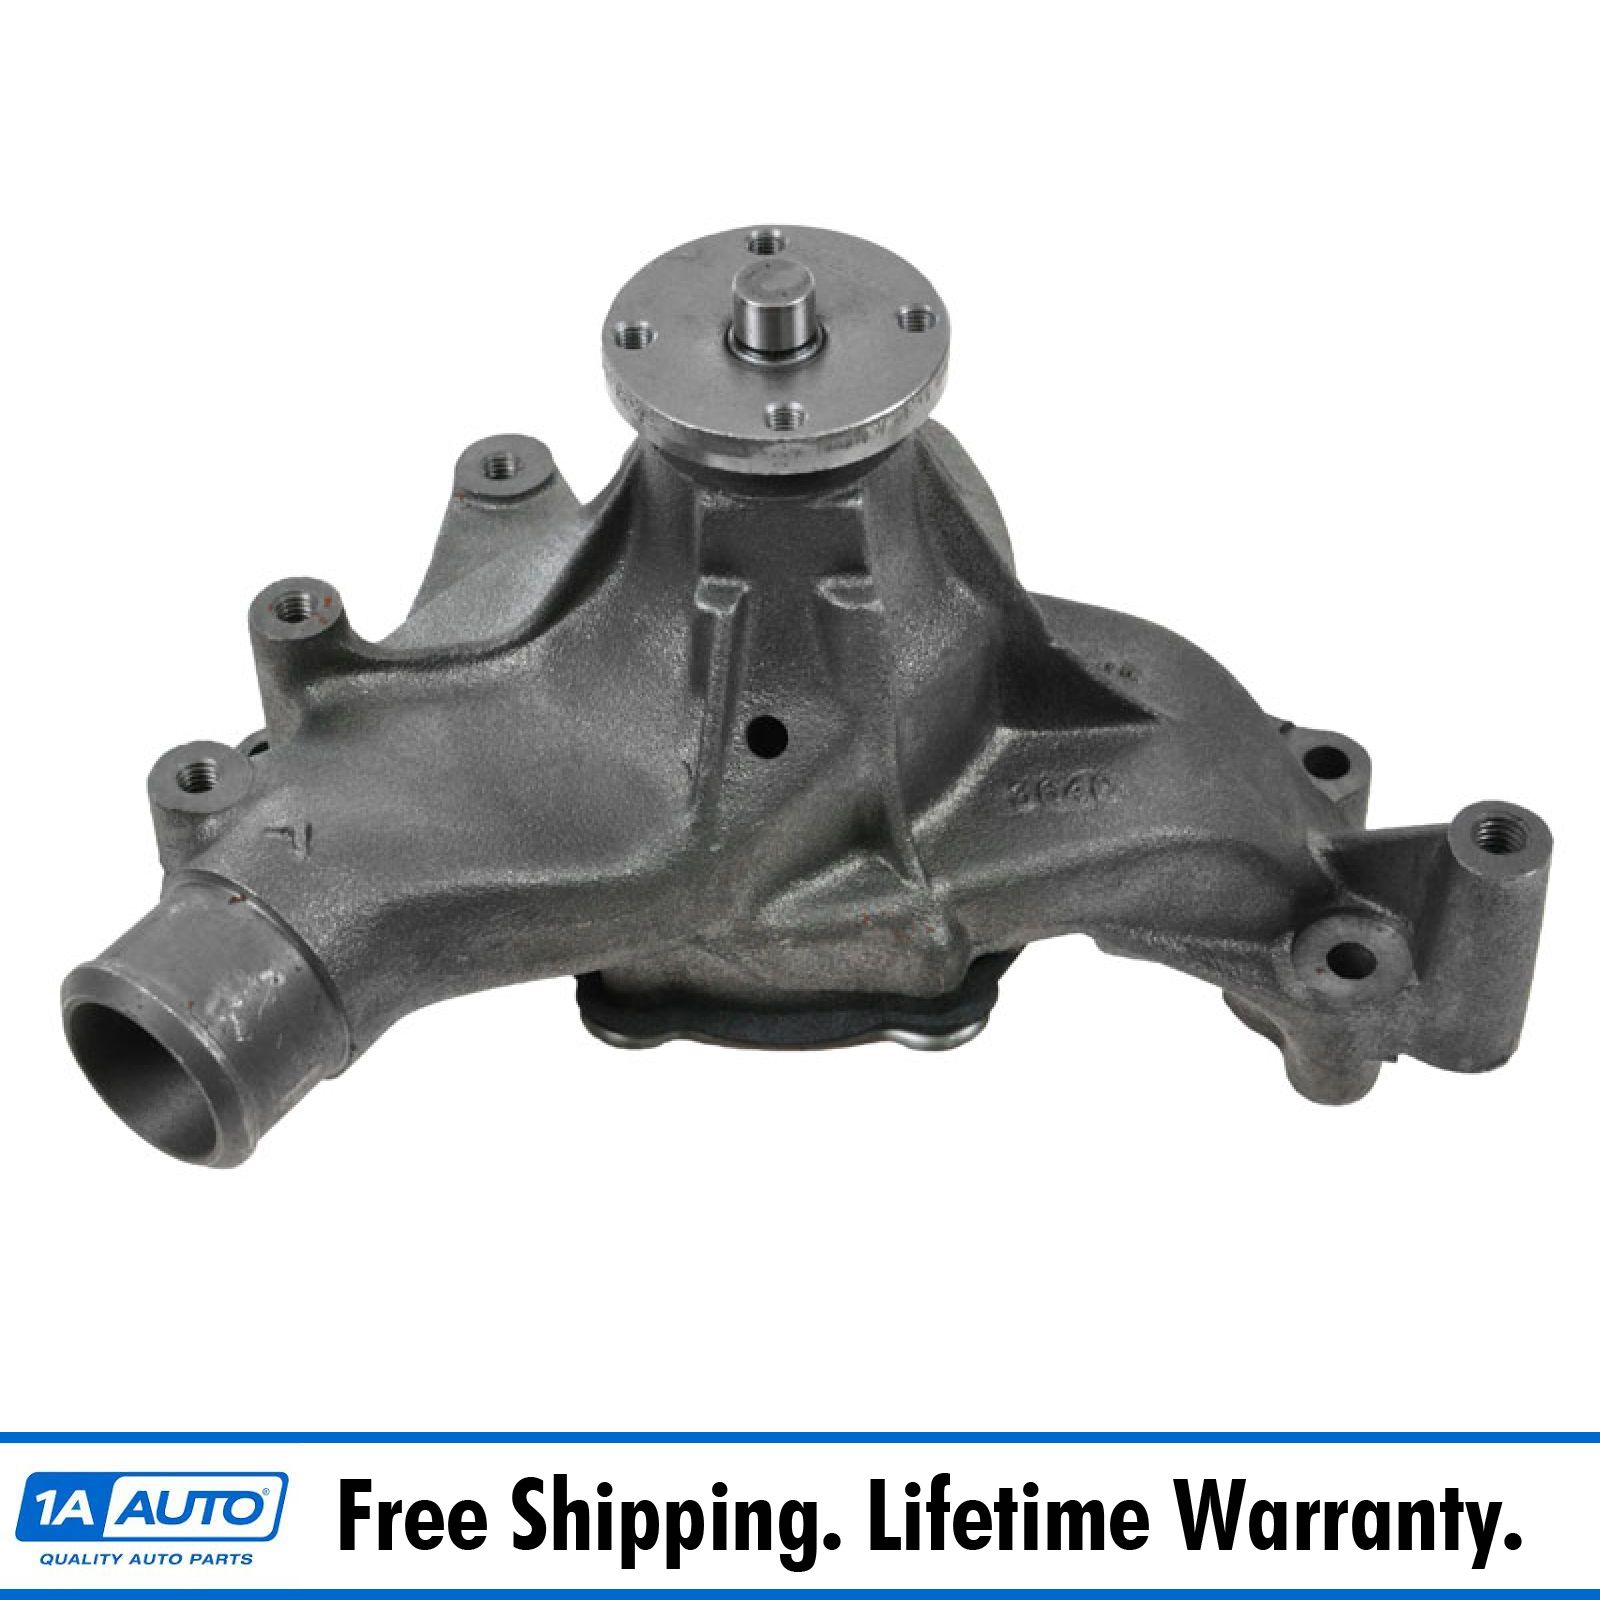 hight resolution of ac delco 252 608 water pump kit for chevy camaro gmc suburban pickup truck v8